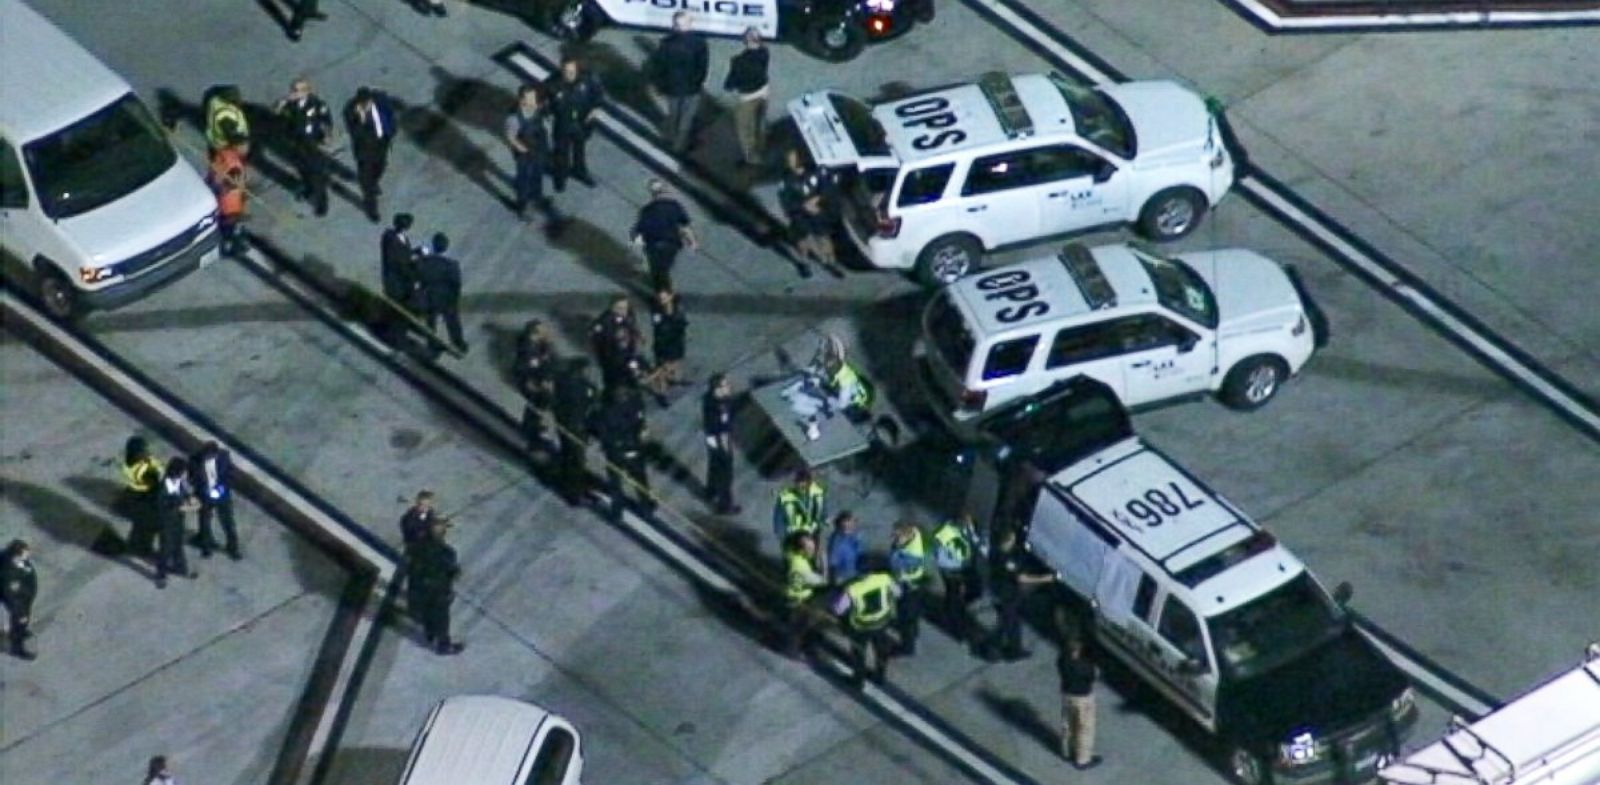 PHOTO: Los Angeles police and the FBI are investigating how four improvised explosive devices were placed in restricted areas of Los Angeles International Airport.